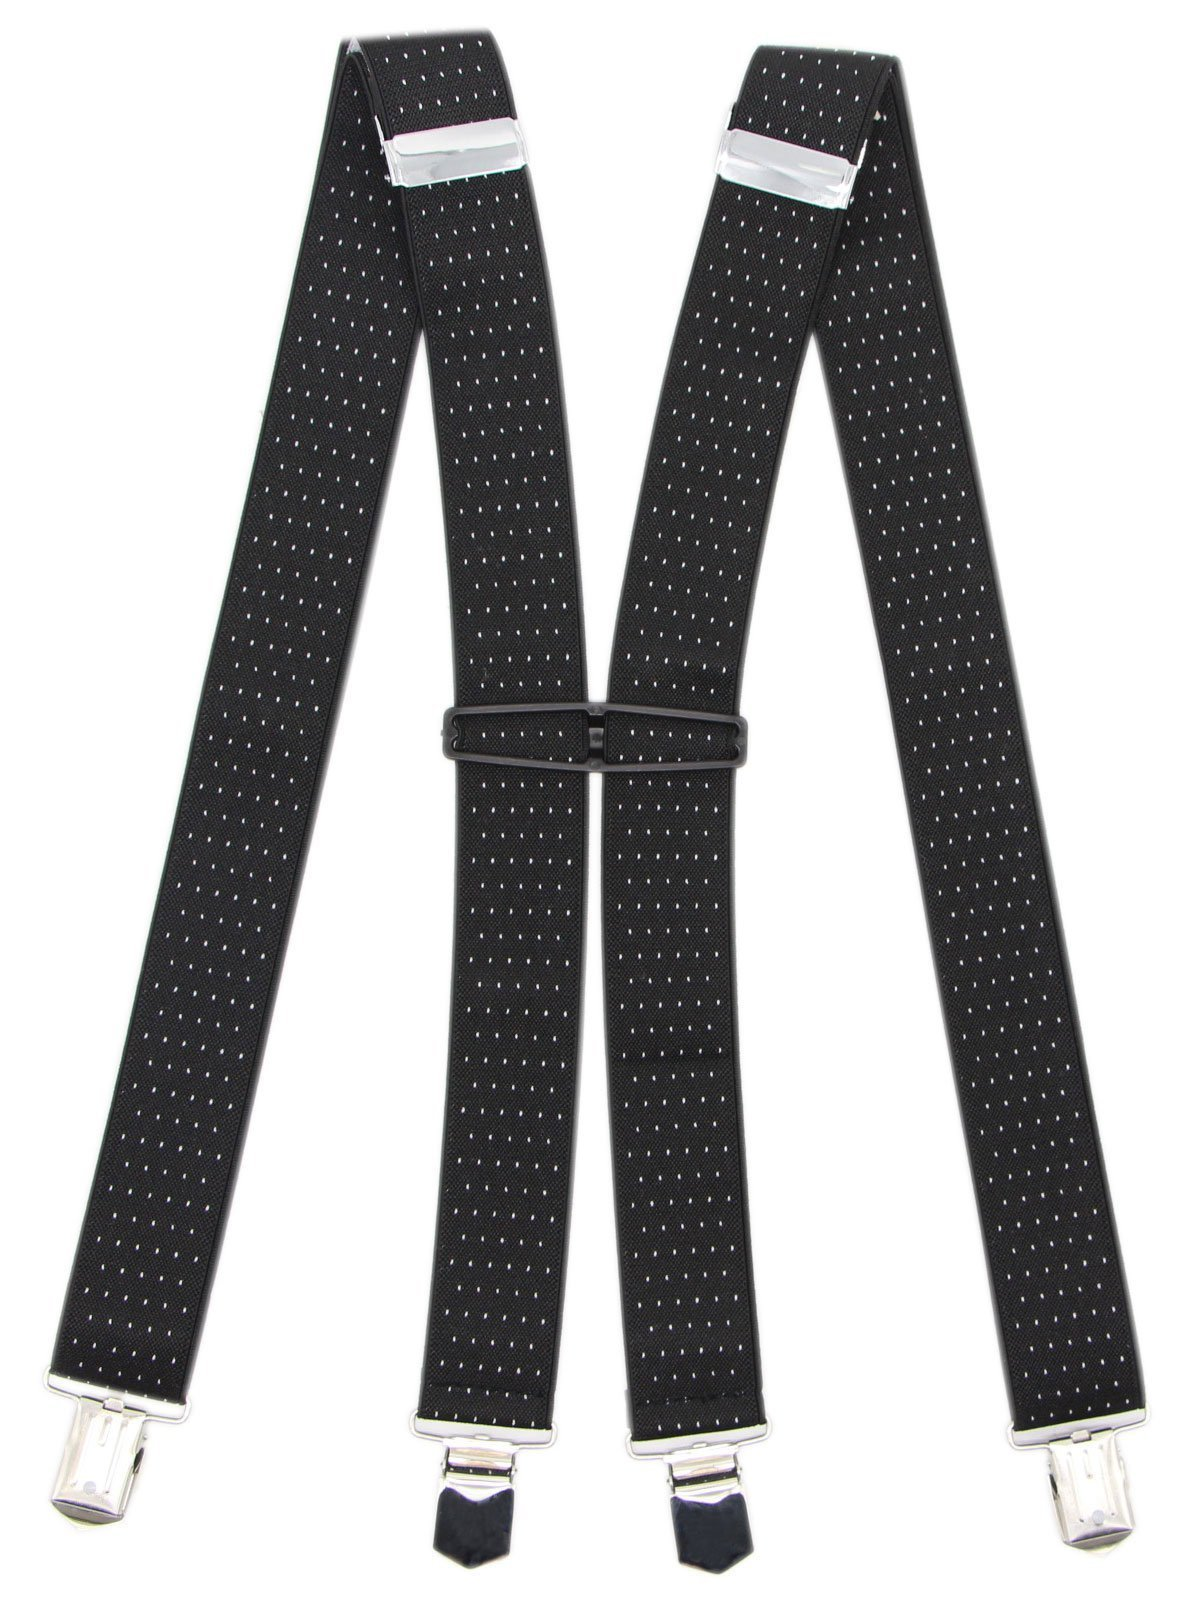 Suspenders For Men With 4 Clips: 11 Colors For Formal And Casual Occasions (Black Dot)